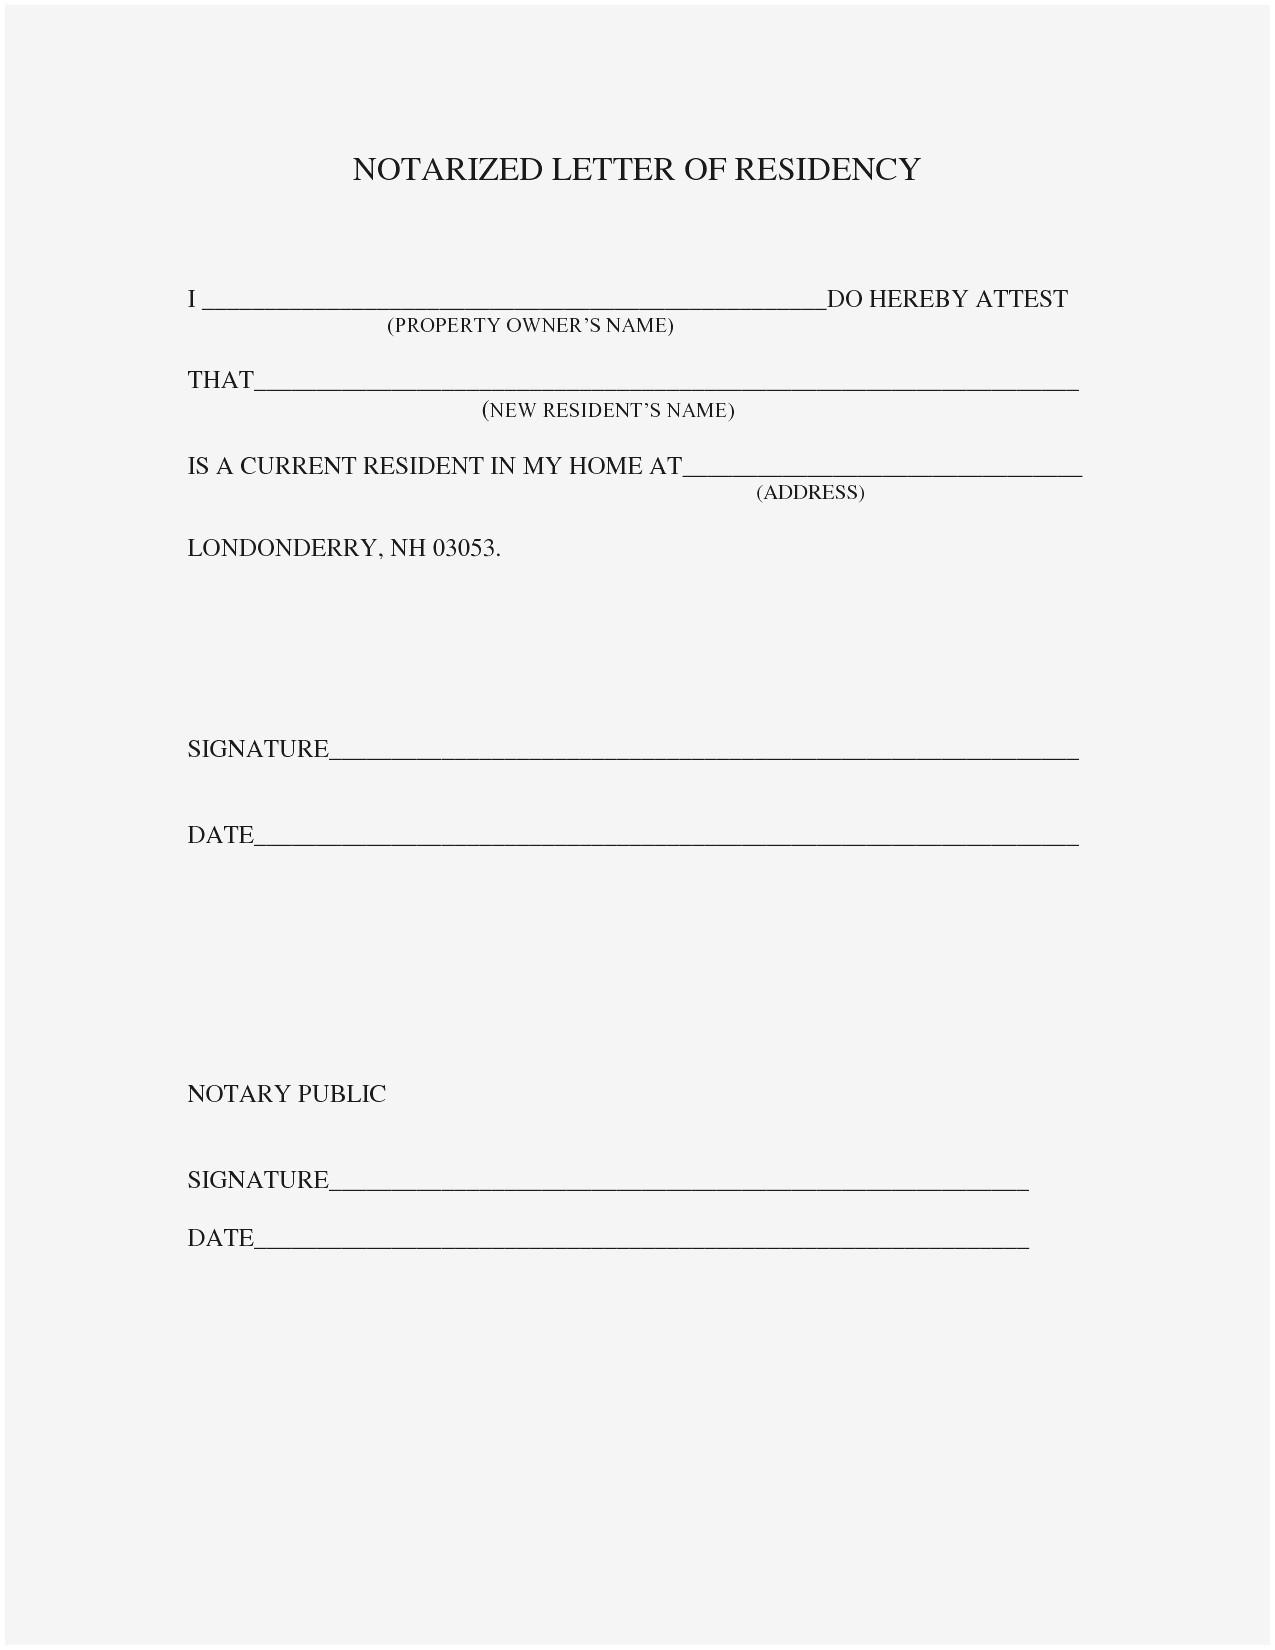 proof of residency letter notarized template example-Printable Notarized Letter Residency Template Samples How to Notarize A Letter 20-n